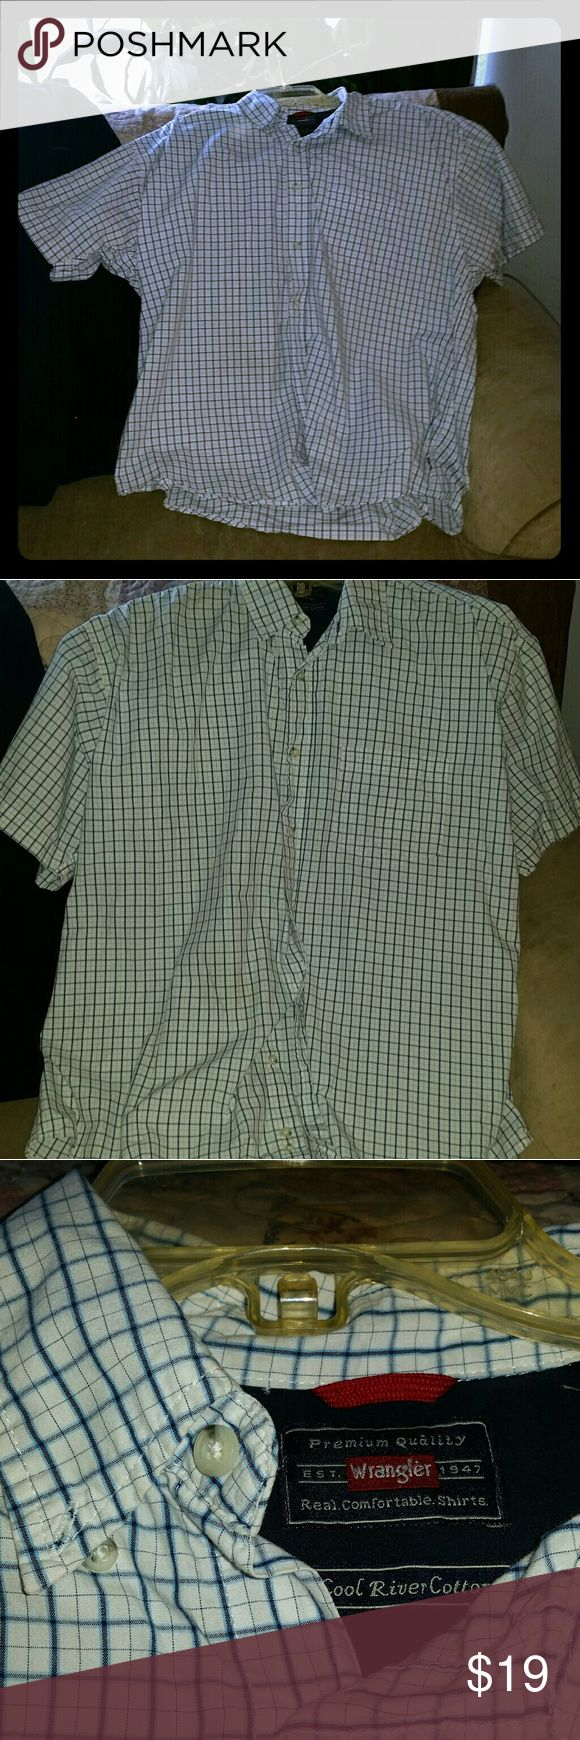 Men's Wrangler Dress Shirt BLUE AND WHITE MEN'S DRESS SHIRT IN GREAT CONDITION. BUTTONS UP AND COMFORTABLE Wrangler Shirts Dress Shirts